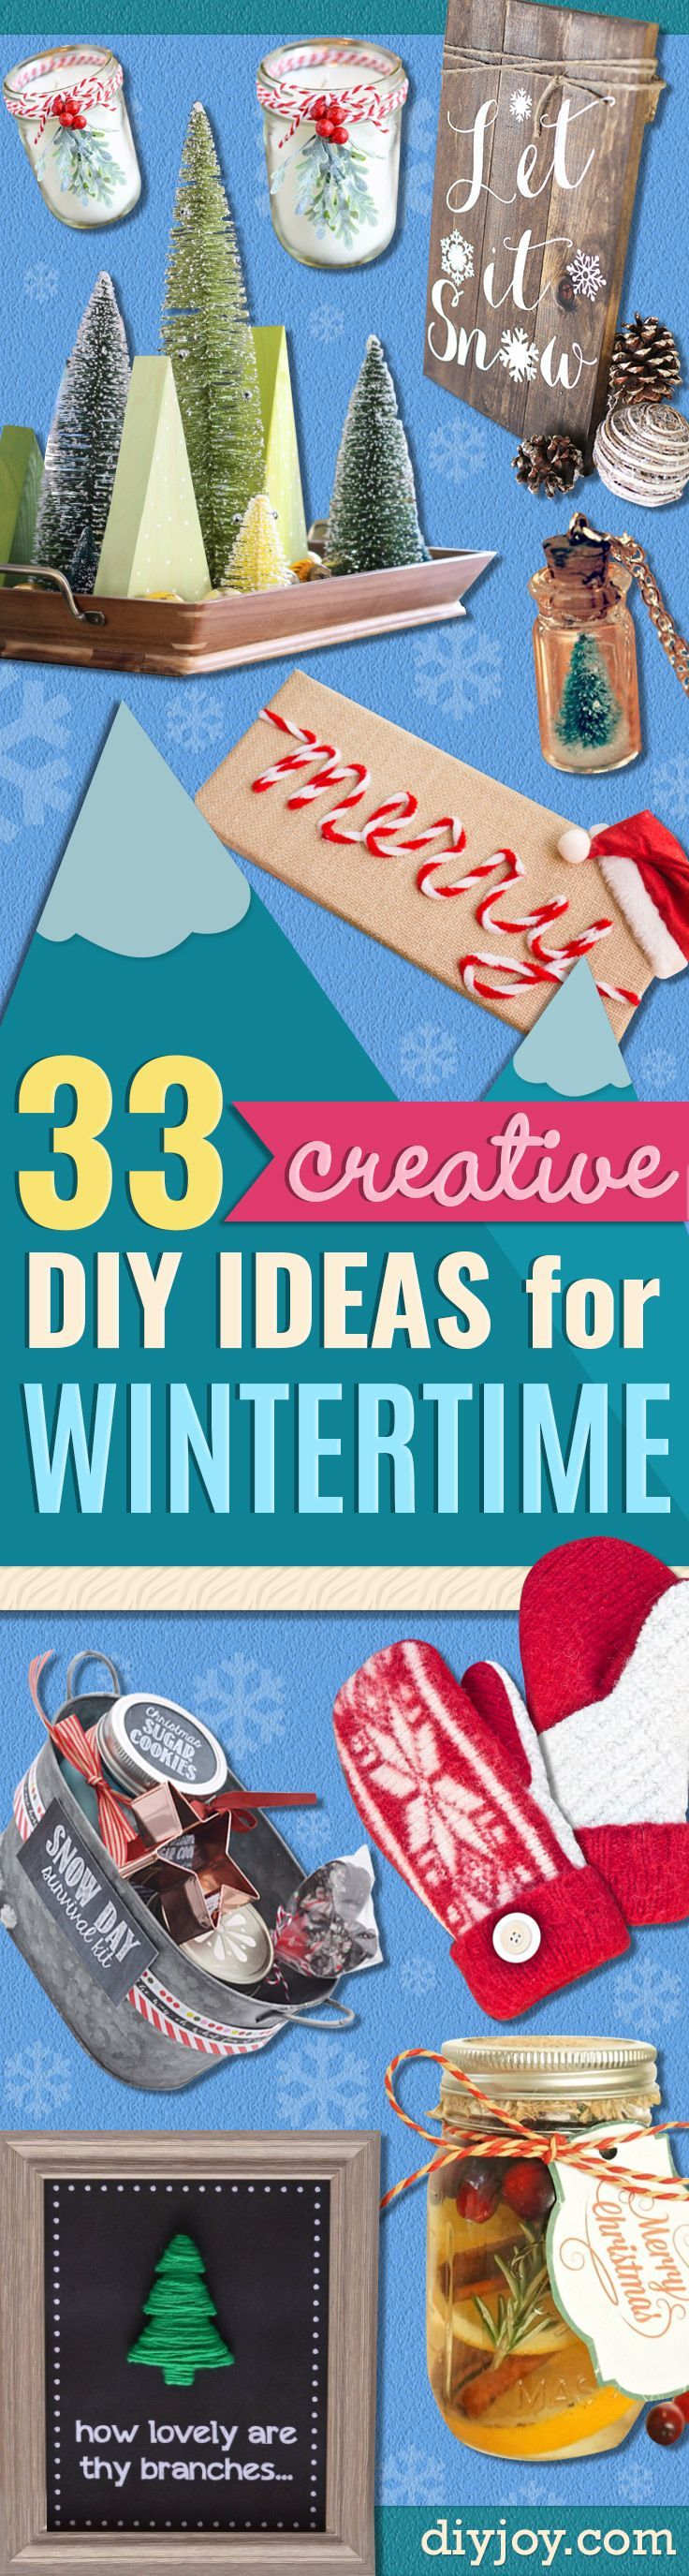 33 creative scrapbook ideas every crafter should know diy projects - 33 Creative Diy Ideas For Wintertime